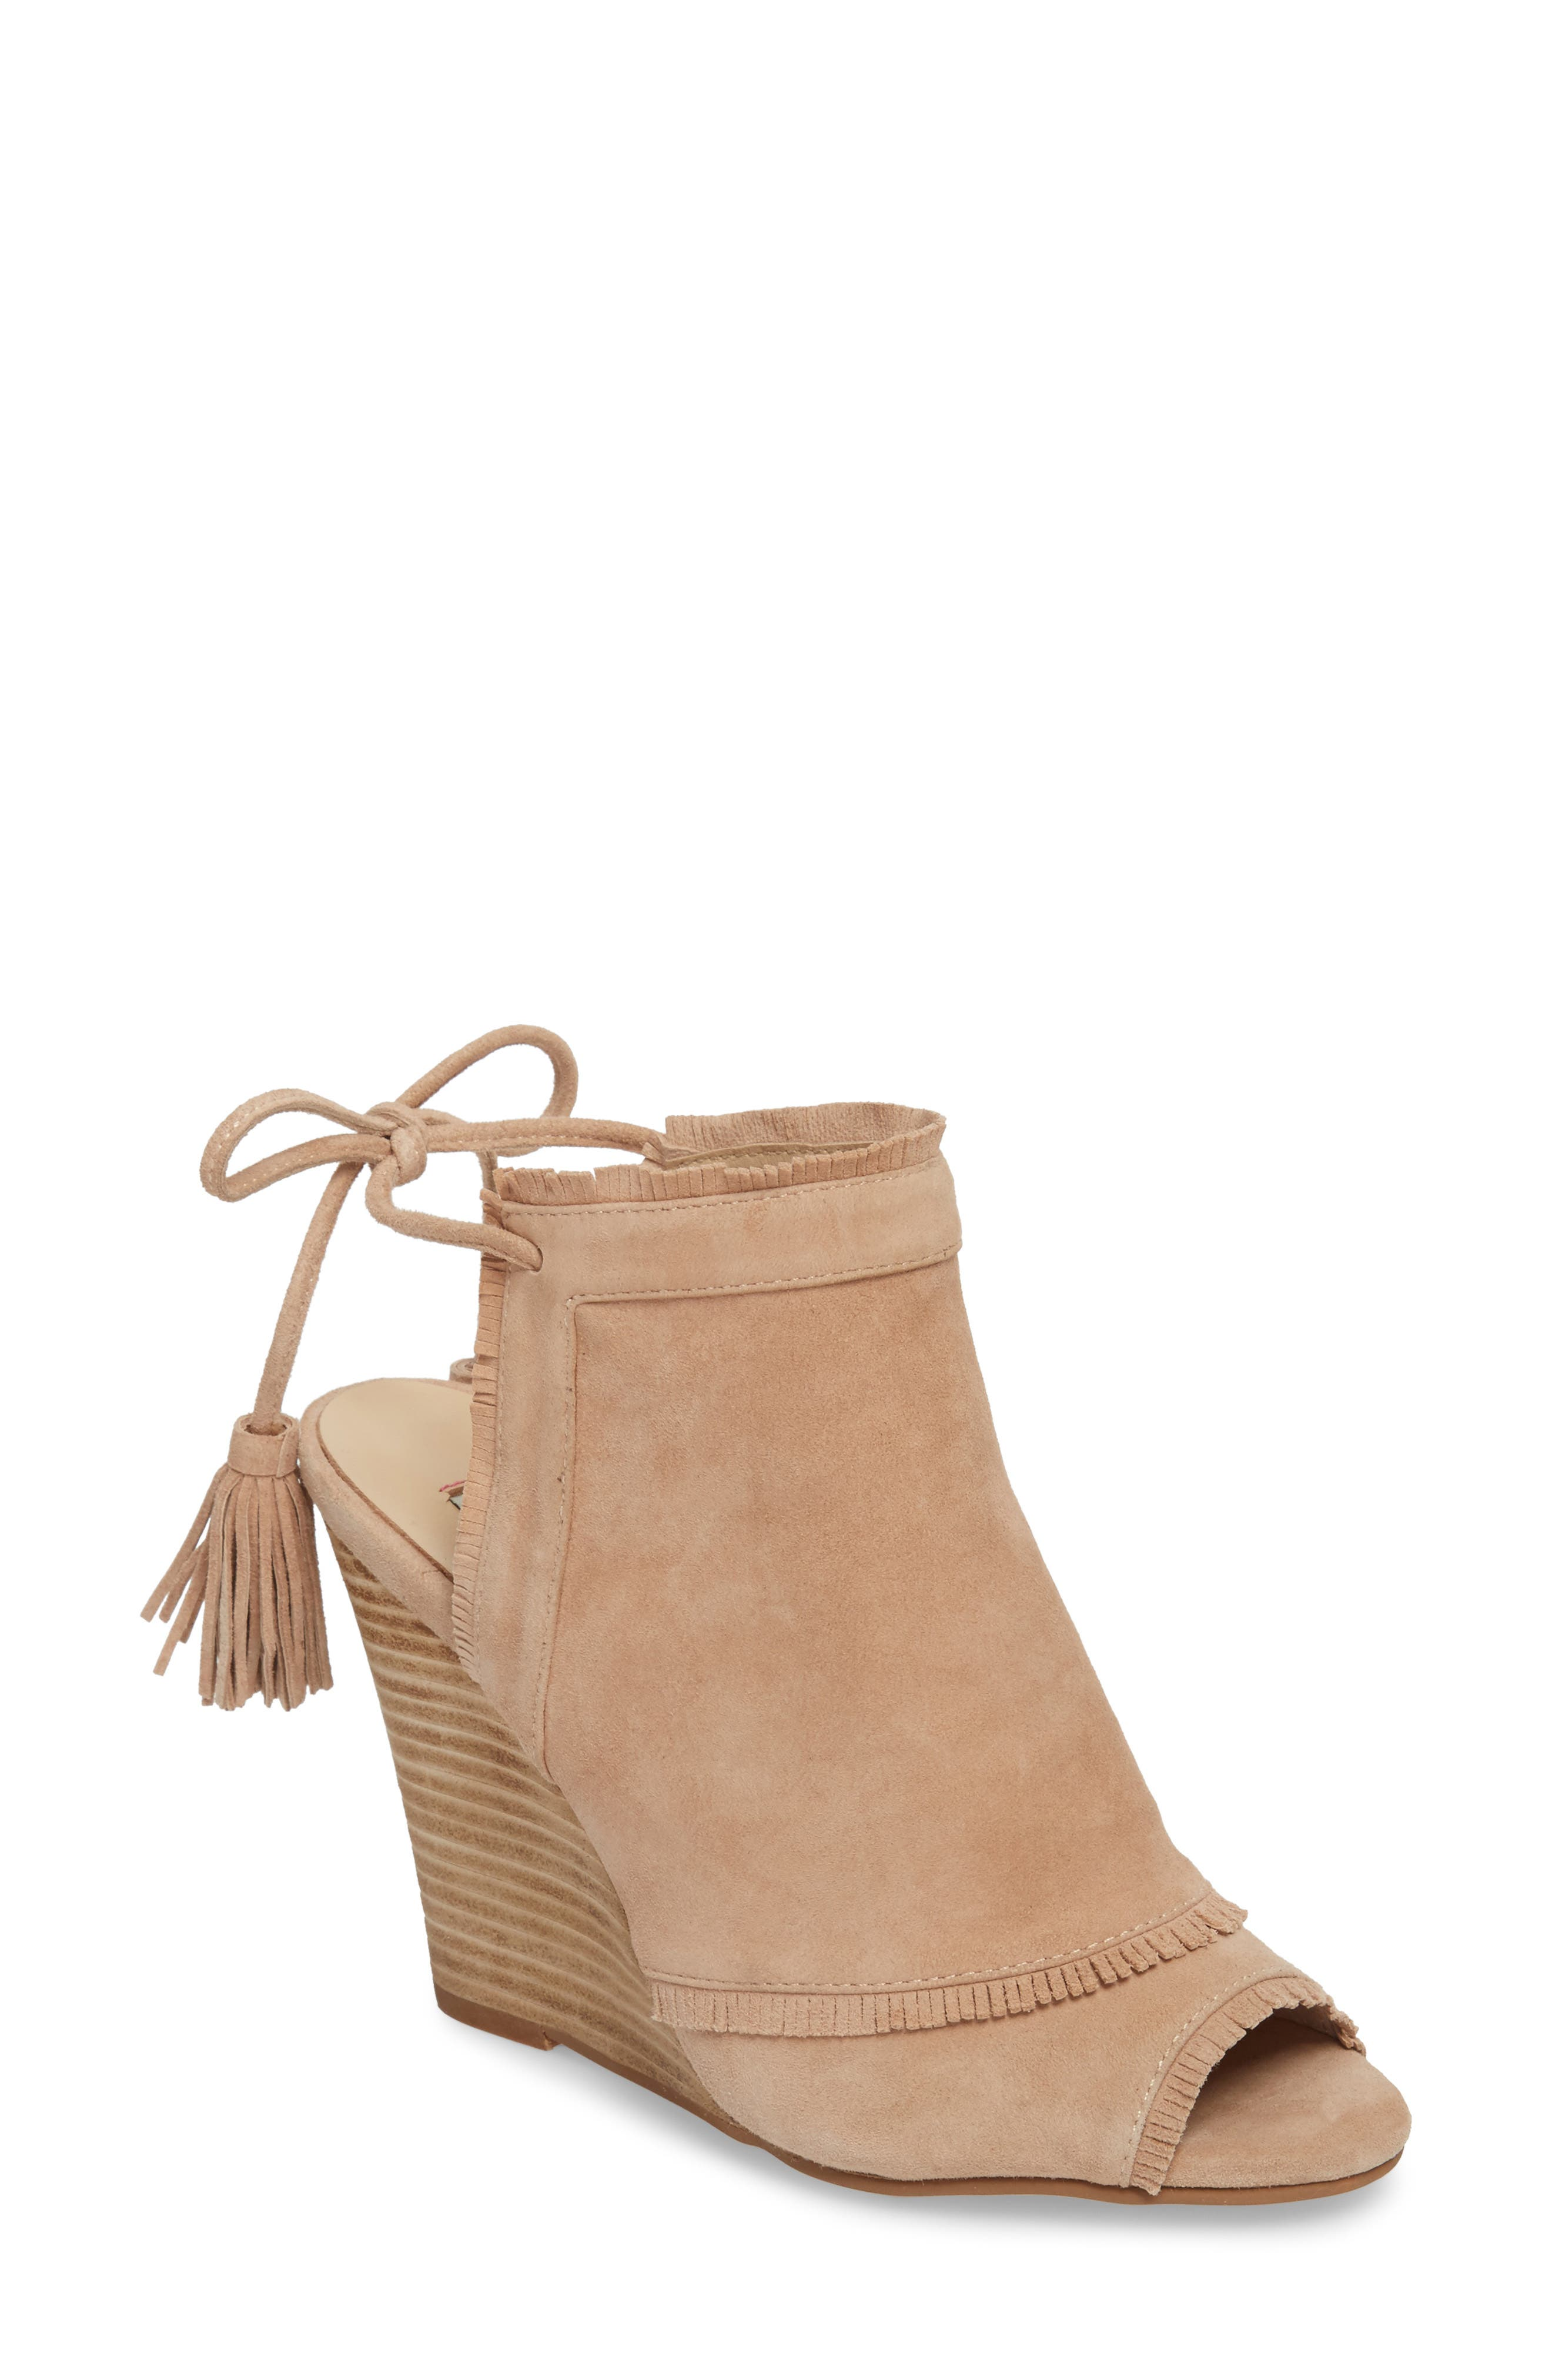 Leilani Wedge,                         Main,                         color, Tigers Eye Suede